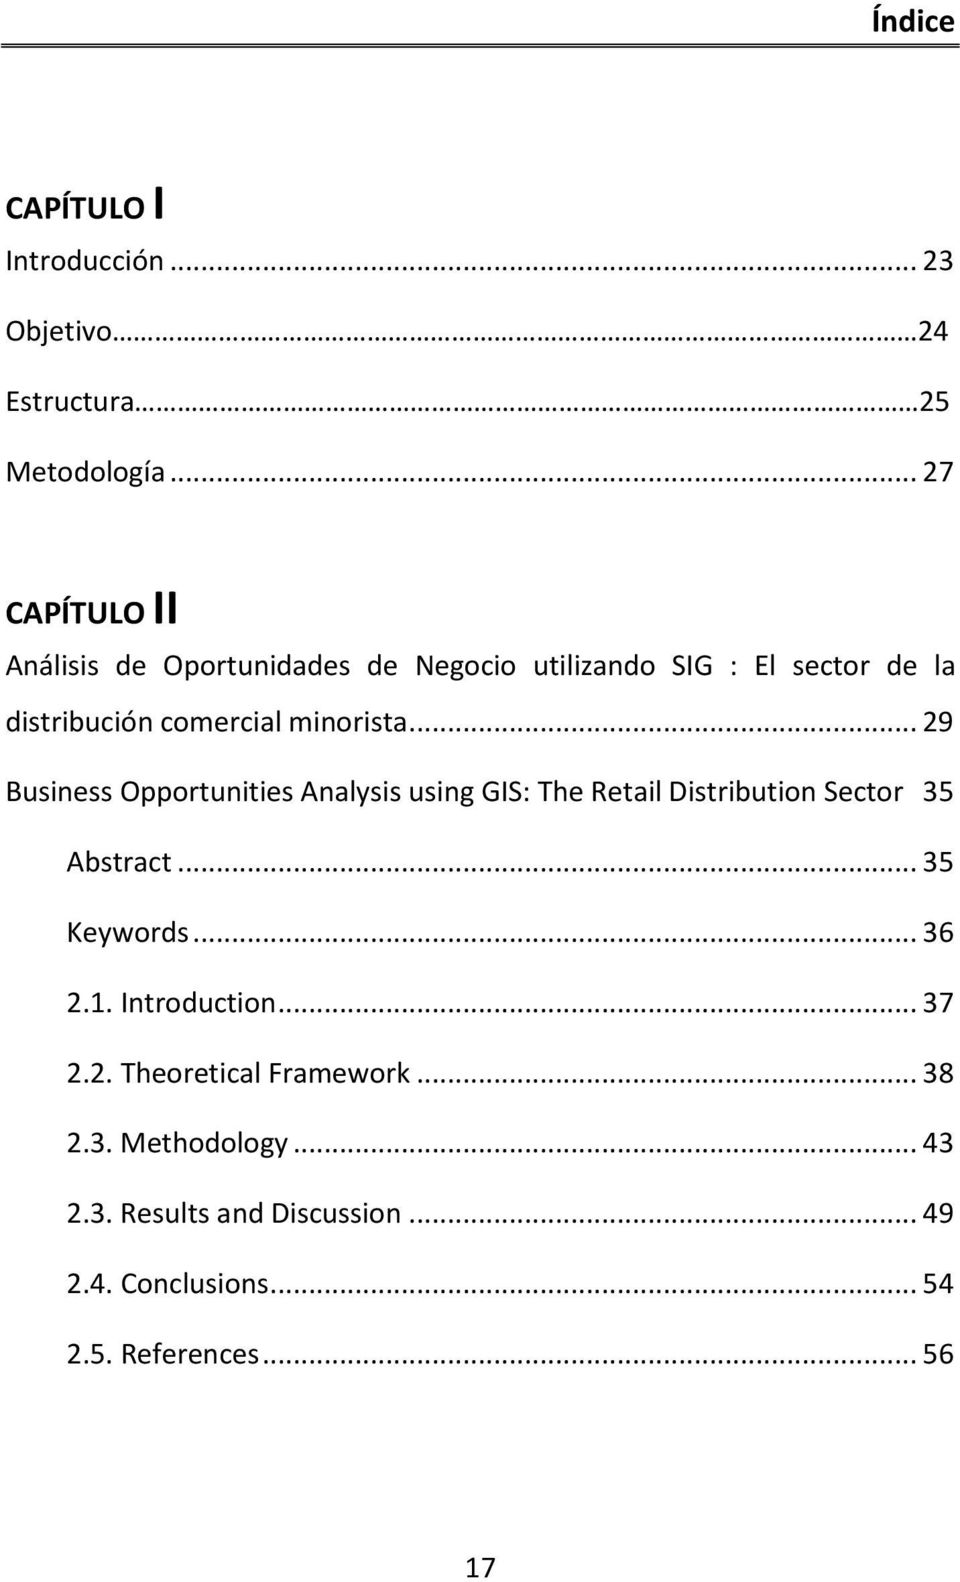 minorista... 29 Business Opportunities Analysis using GIS: The Retail Distribution Sector 35 Abstract... 35 Keywords.